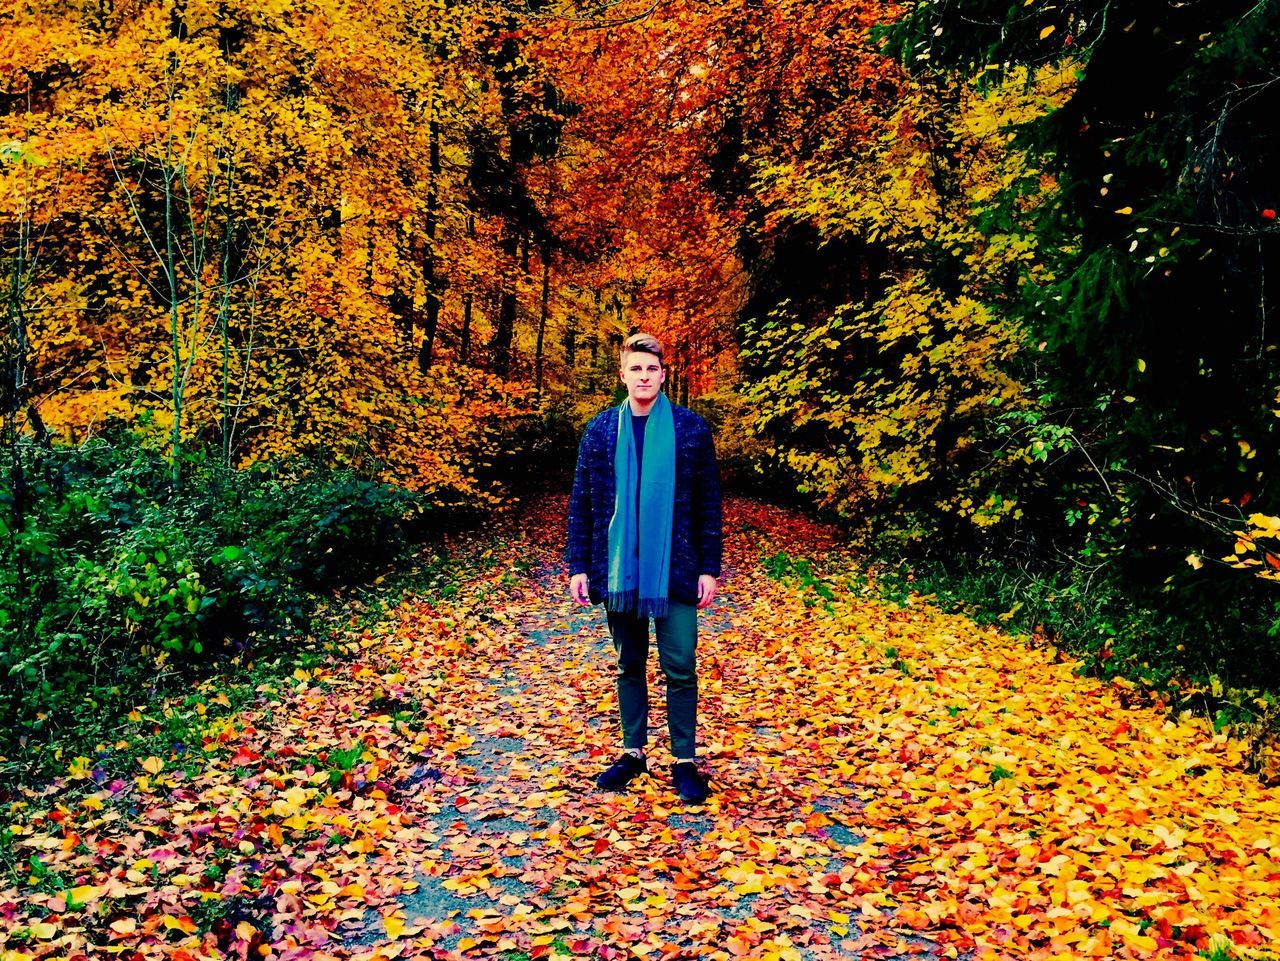 autumn, change, leaf, full length, one person, real people, tree, front view, nature, looking at camera, forest, standing, day, outdoors, lifestyles, portrait, casual clothing, trousers, leisure activity, red, young adult, park - man made space, smiling, beauty in nature, young women, adult, people